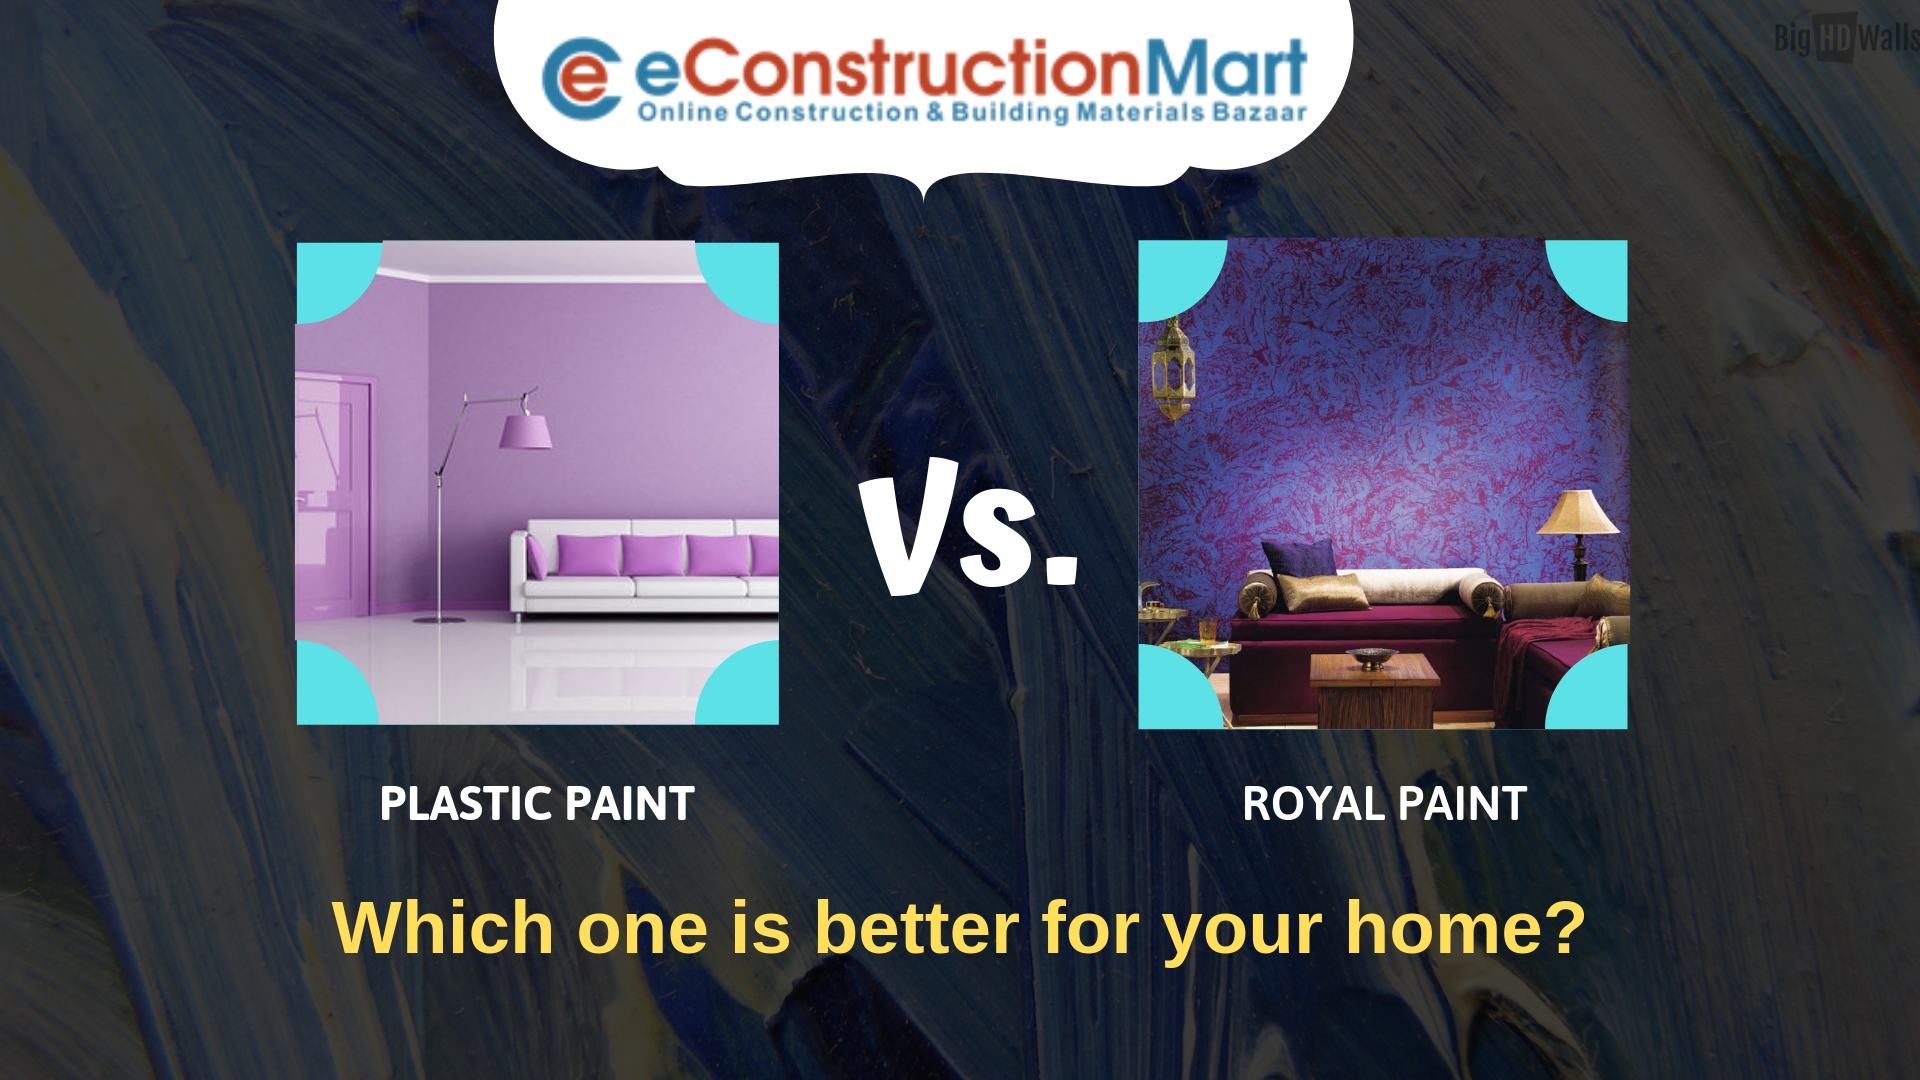 Plasticpaint And Royalepaint Which One Is Better For Your Home Https Bit Ly 2pbcddp Paint Homepaint Asianpaint Ne Asian Paints Wall Painting Painting